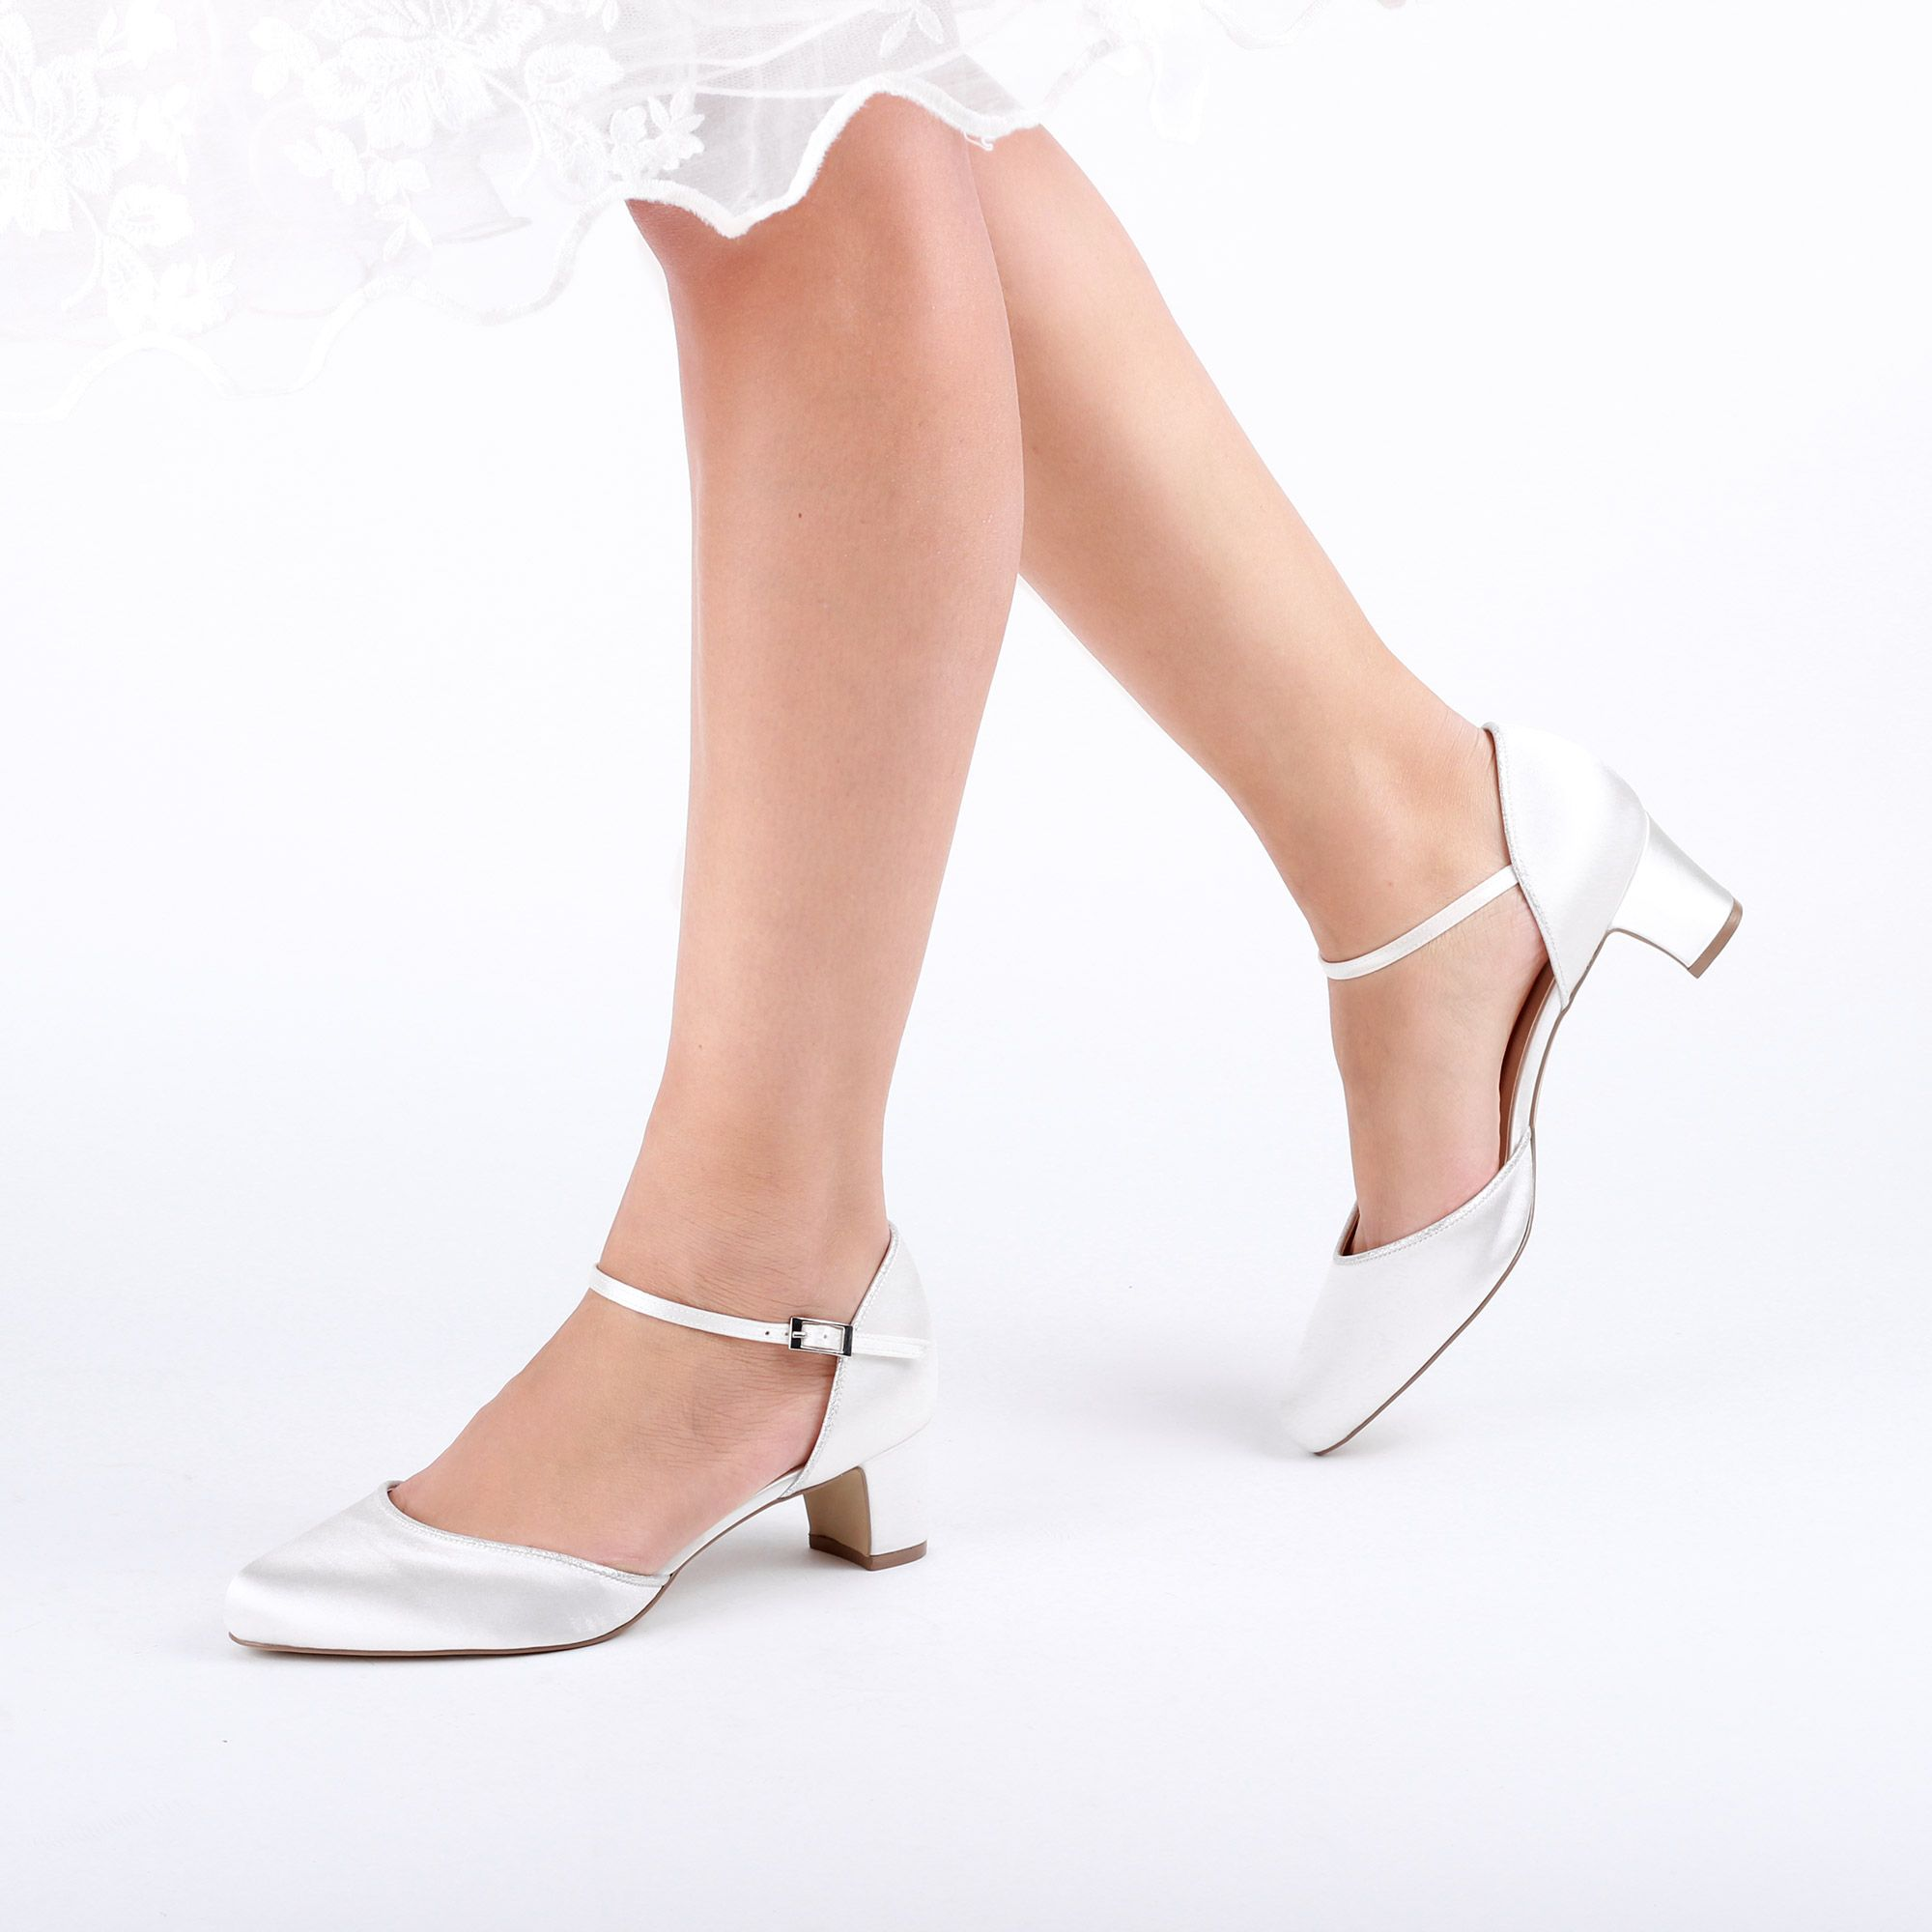 Admire in 2020 Wide fit wedding shoes, Wedding shoes